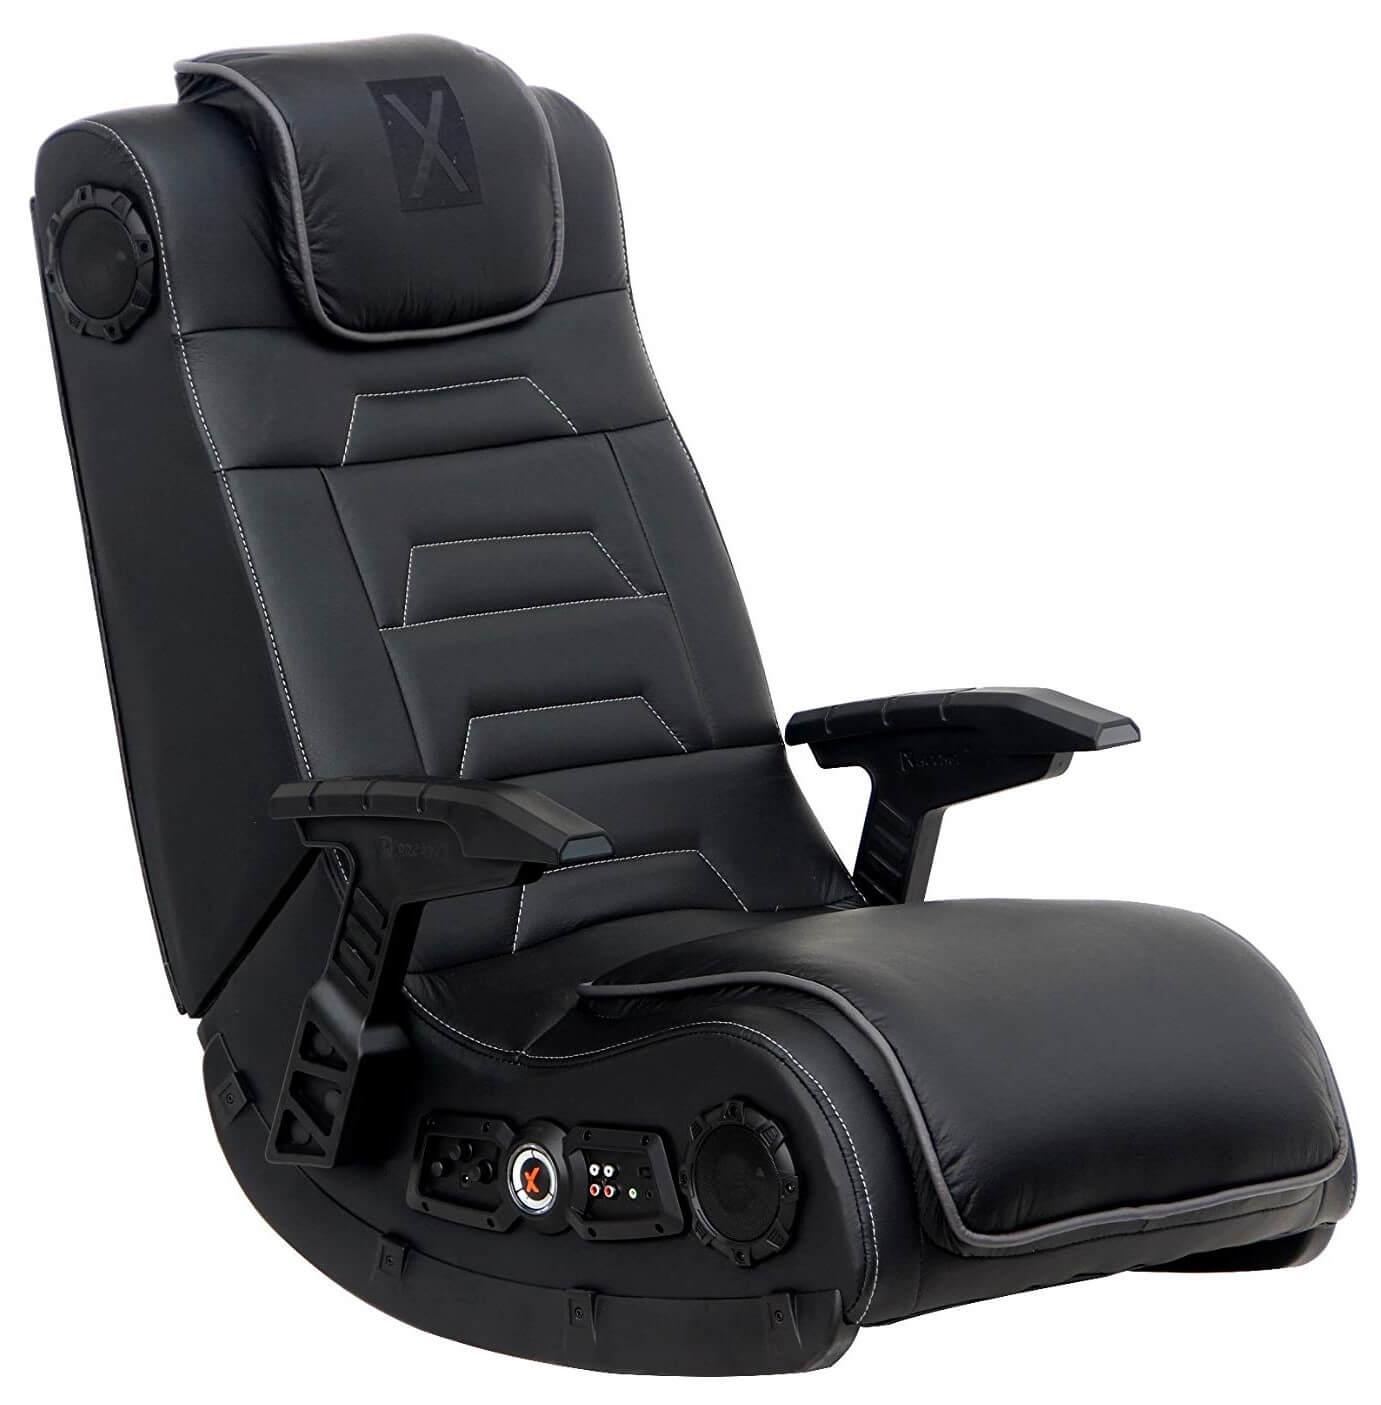 Game Chair Rocker Big And Tall Gaming Chair For Guys Heavy Duty Chairs